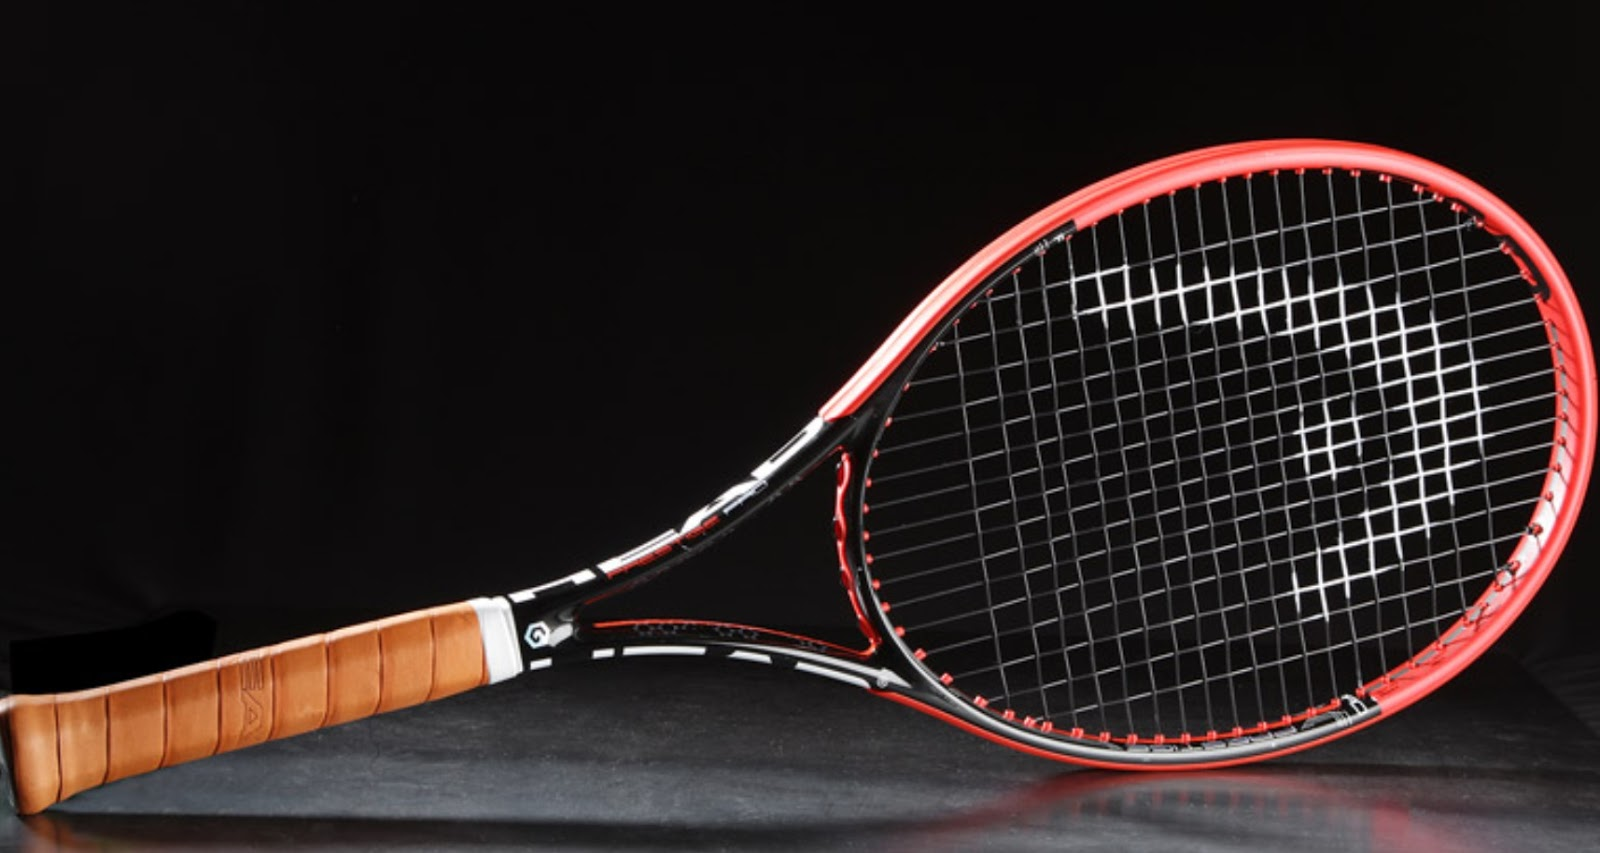 how much expensive are the tennis rackets prestige pro